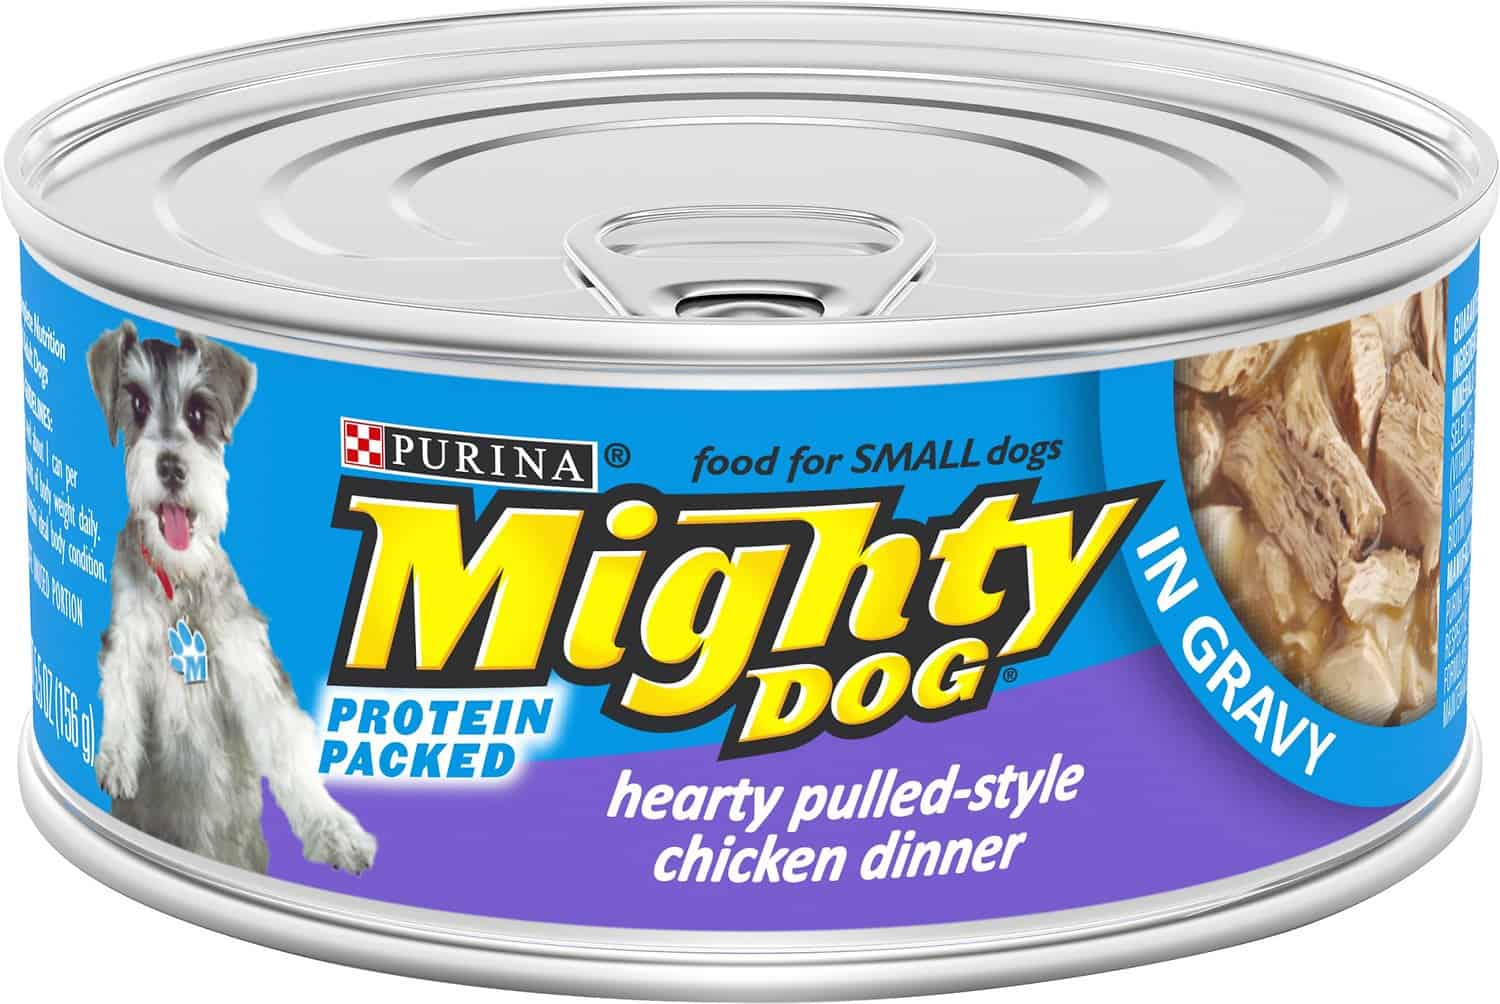 Mighty Dog Dog Food Review 2021: The Mightiest Food for Small Dogs? 3